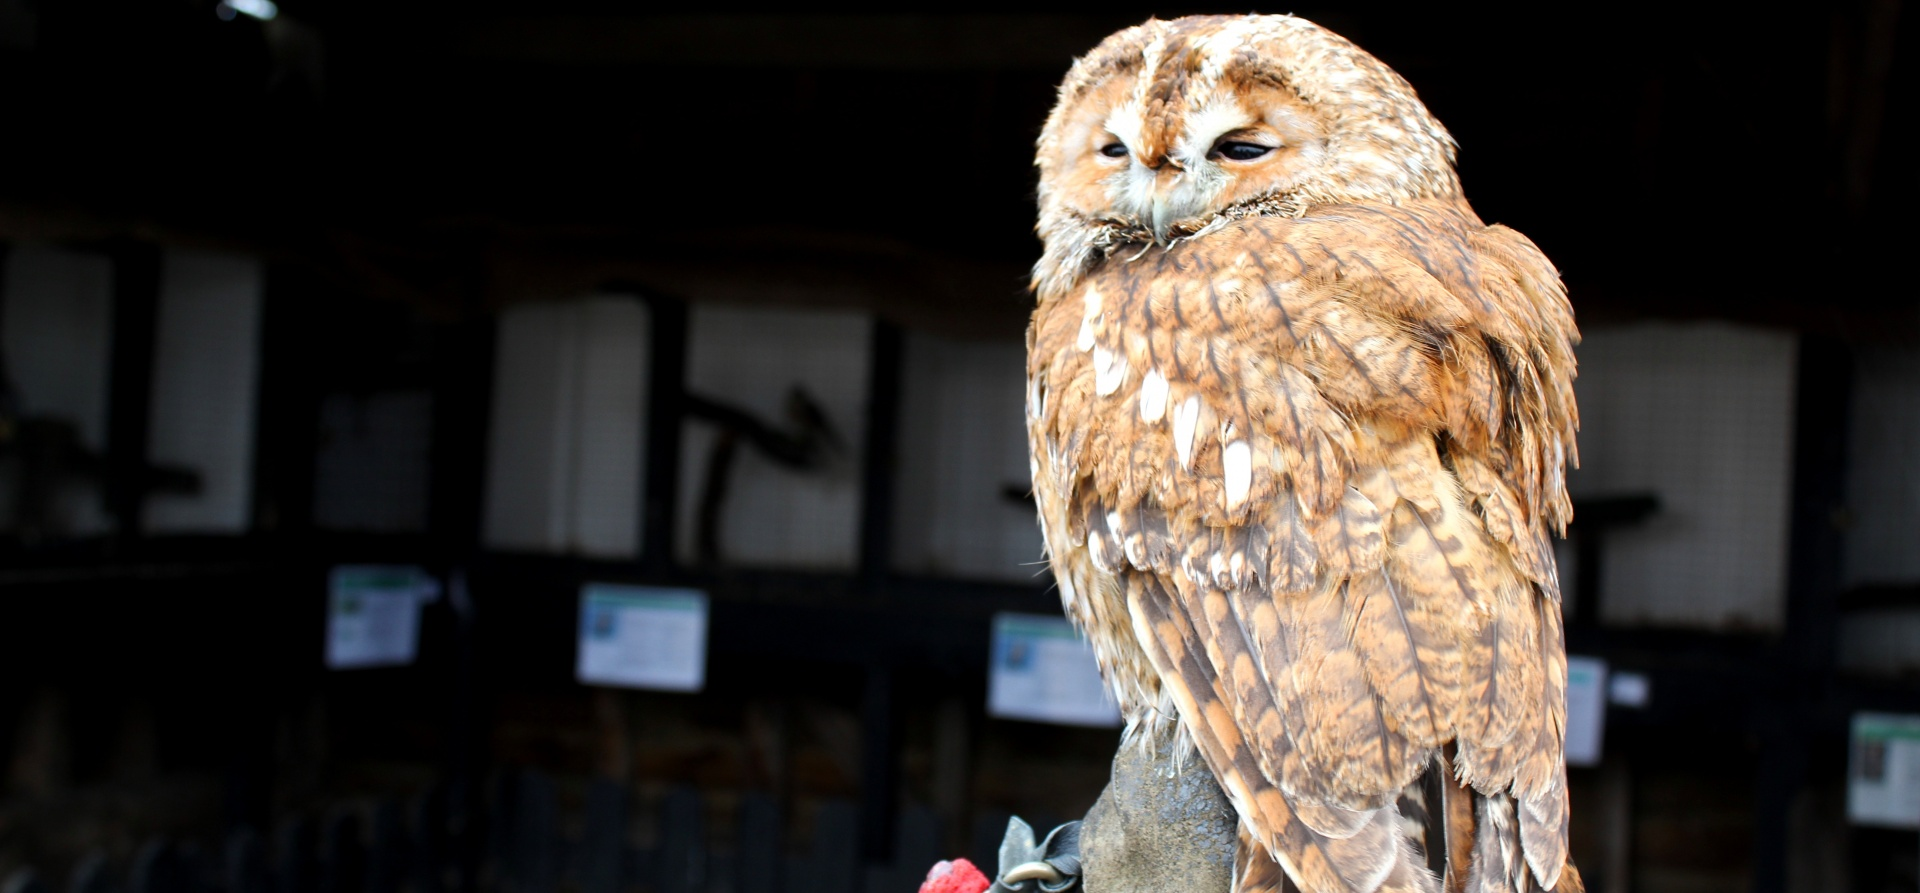 British Birds of Prey Experience in Bedfordshire-8